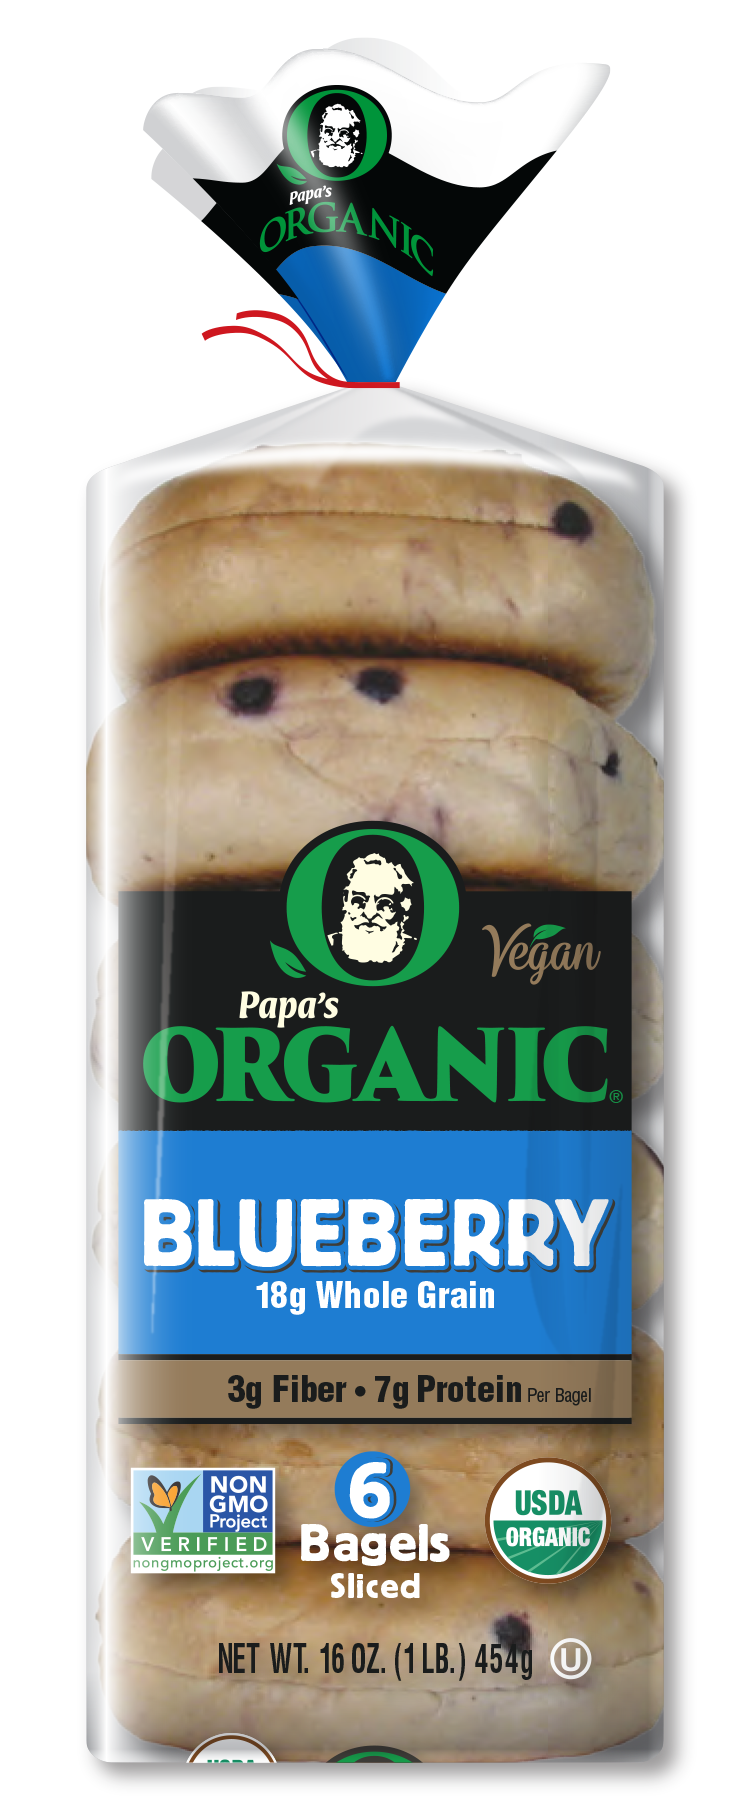 Papa's Blueberry Bagels